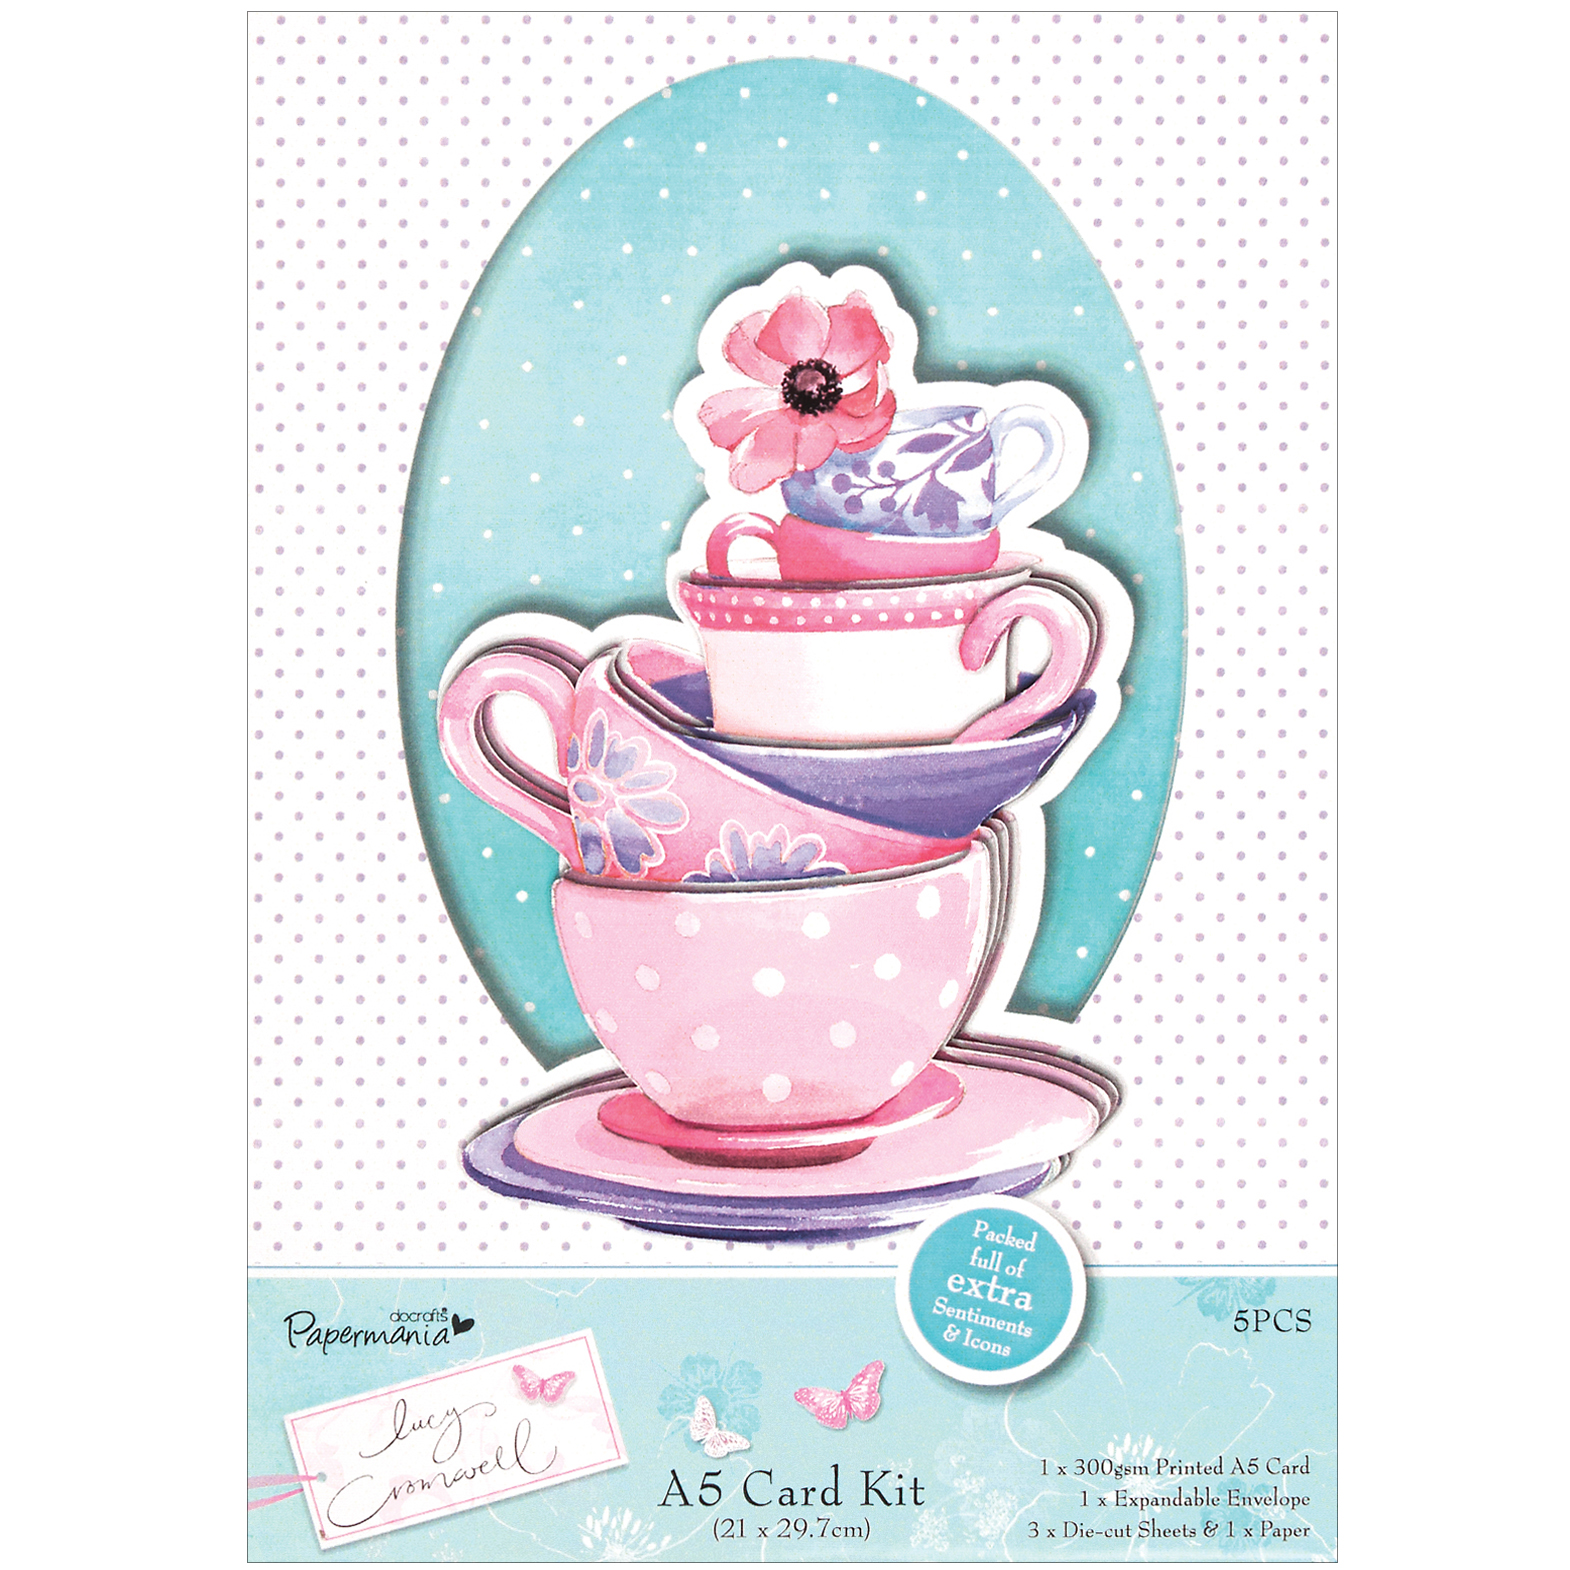 Docrafts Papermania Lucy Cromwell A5 Card Kit